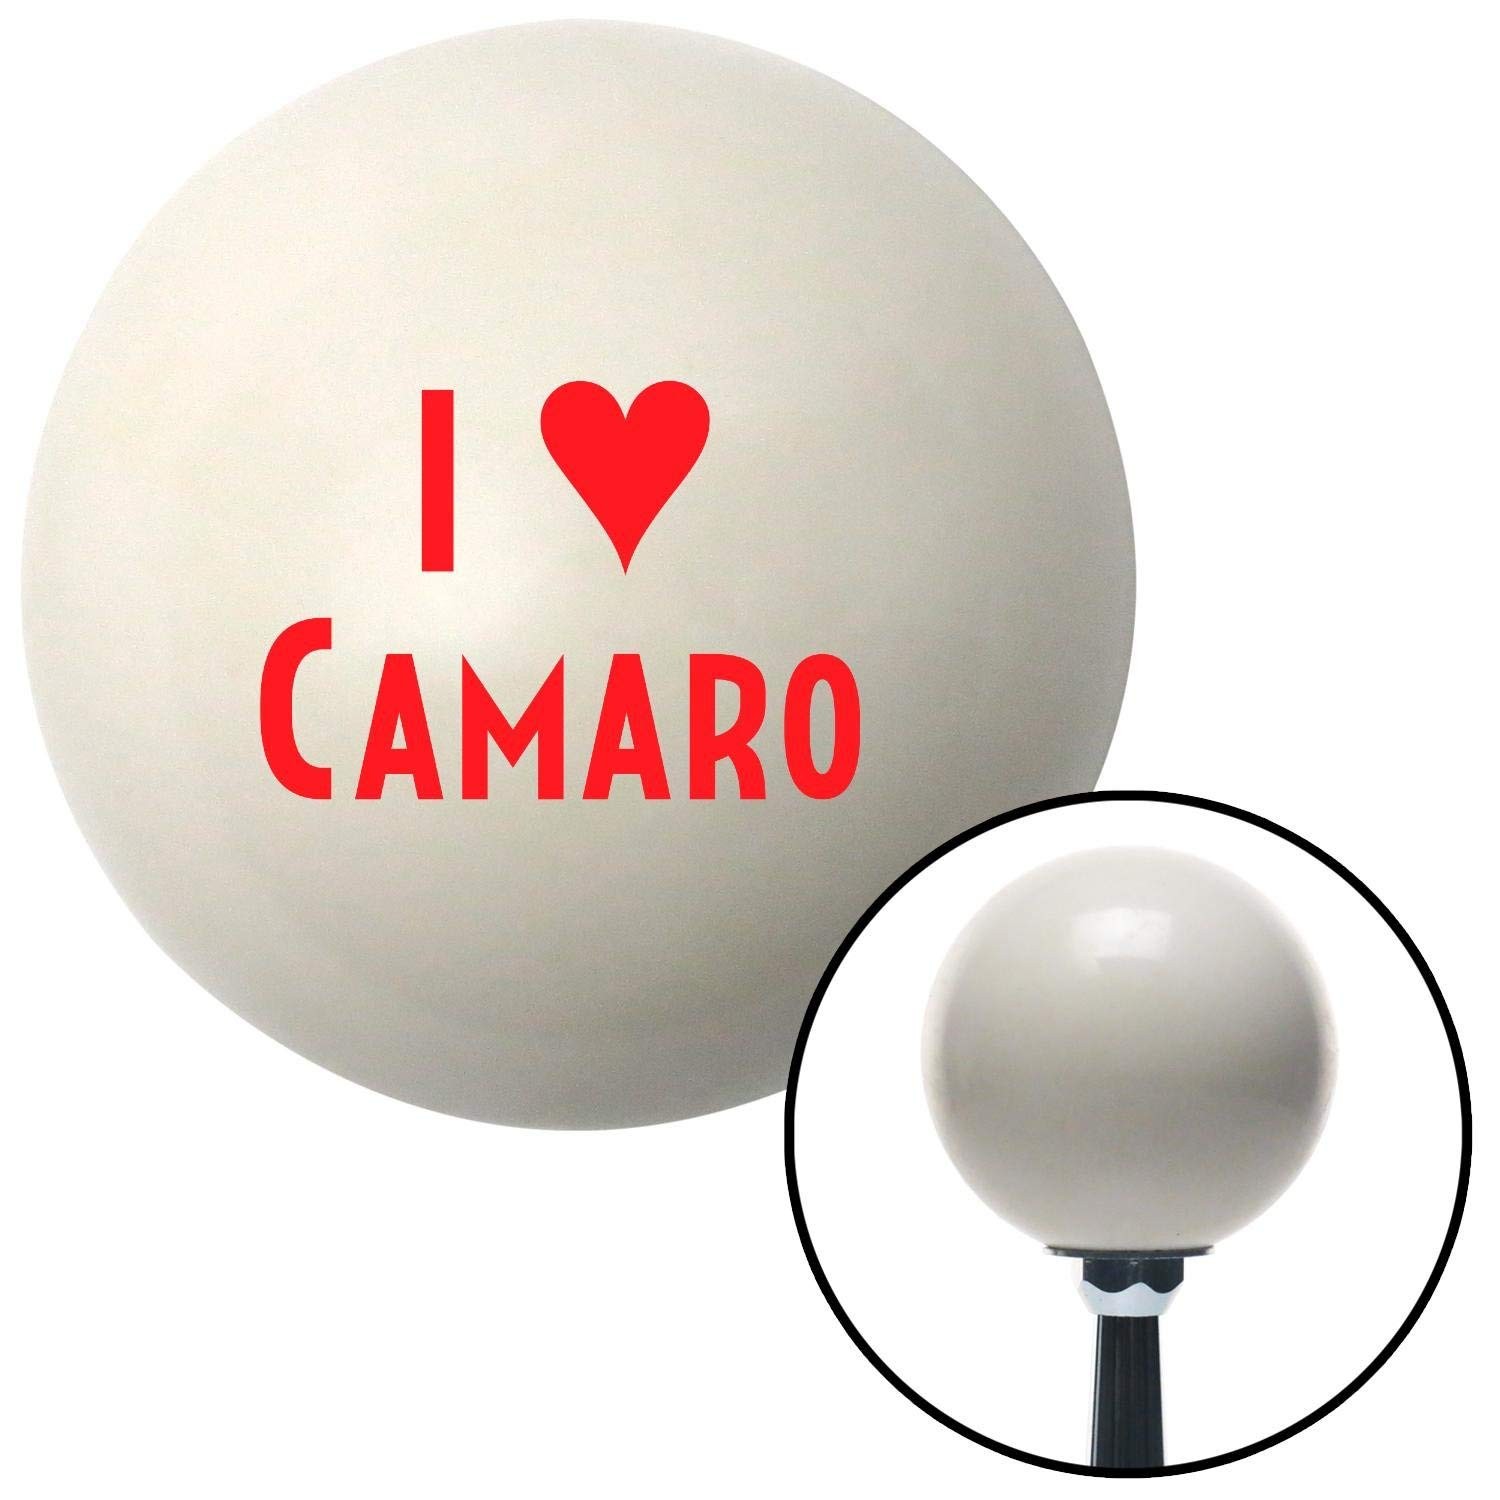 American Shifter 31295 Ivory Shift Knob with 16mm x 1.5 Insert Red I 3 Camaro